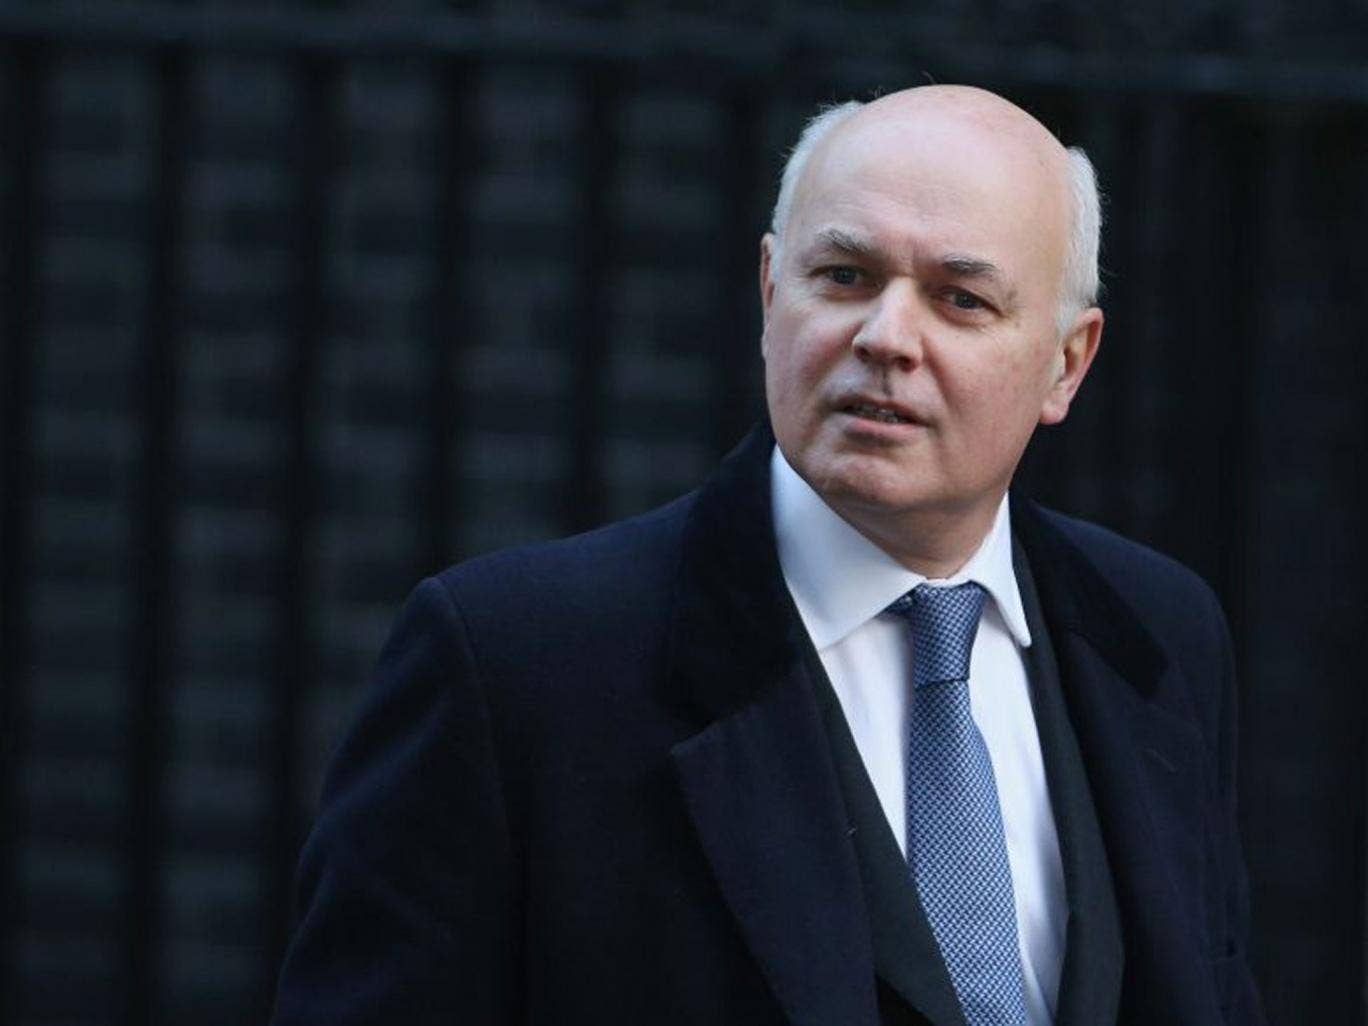 Labour have accused Iain Duncan Smith of letting Atos spin out of control